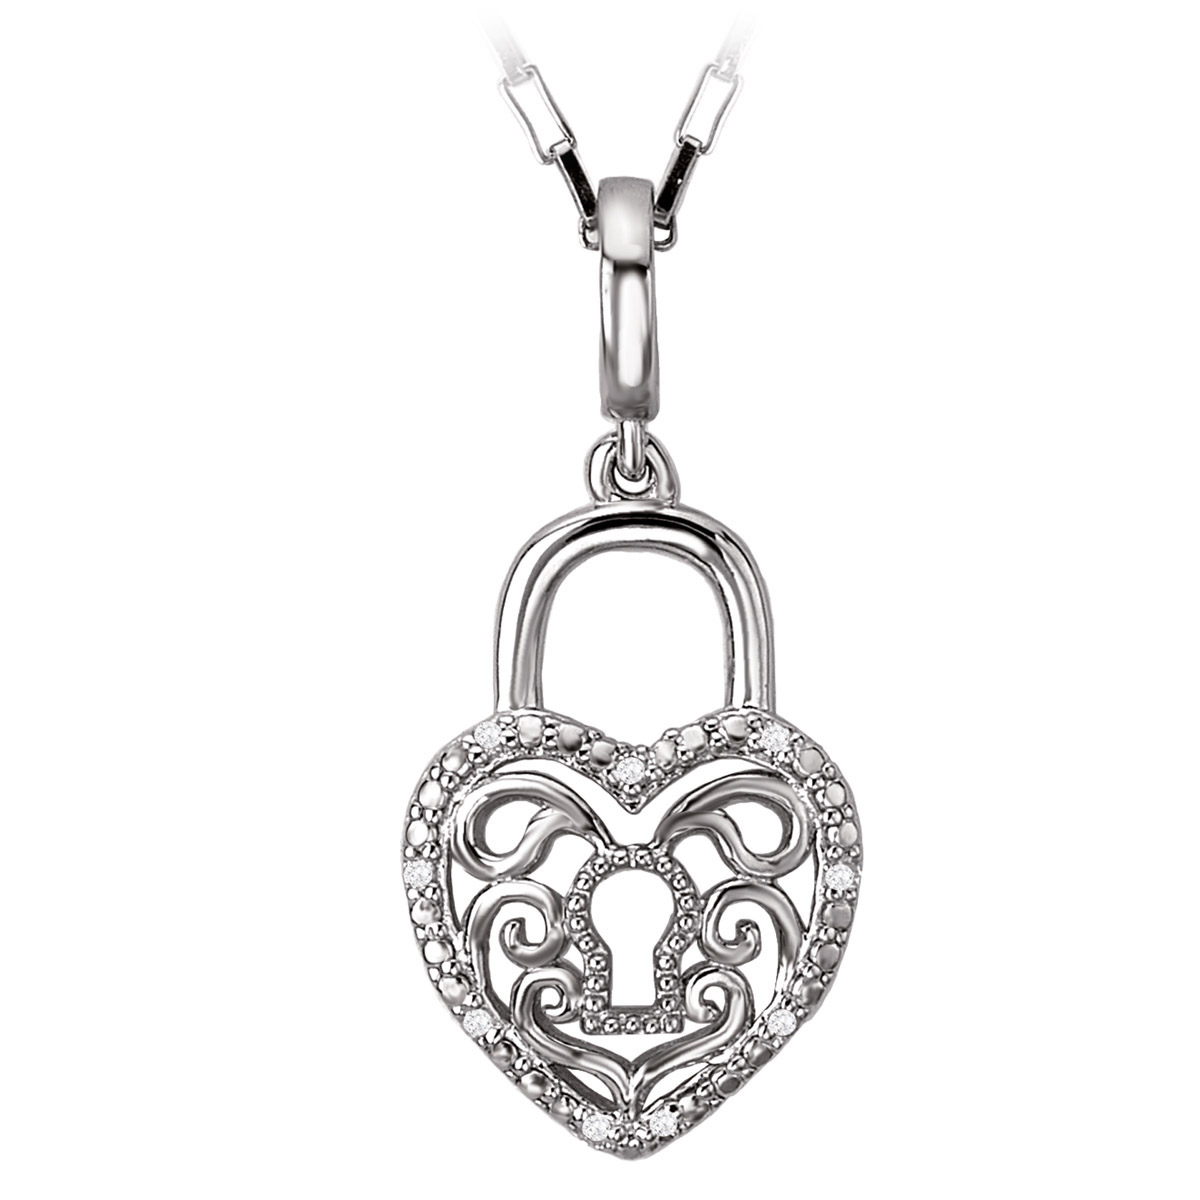 Heart Lock Pendant with Diamond Accents